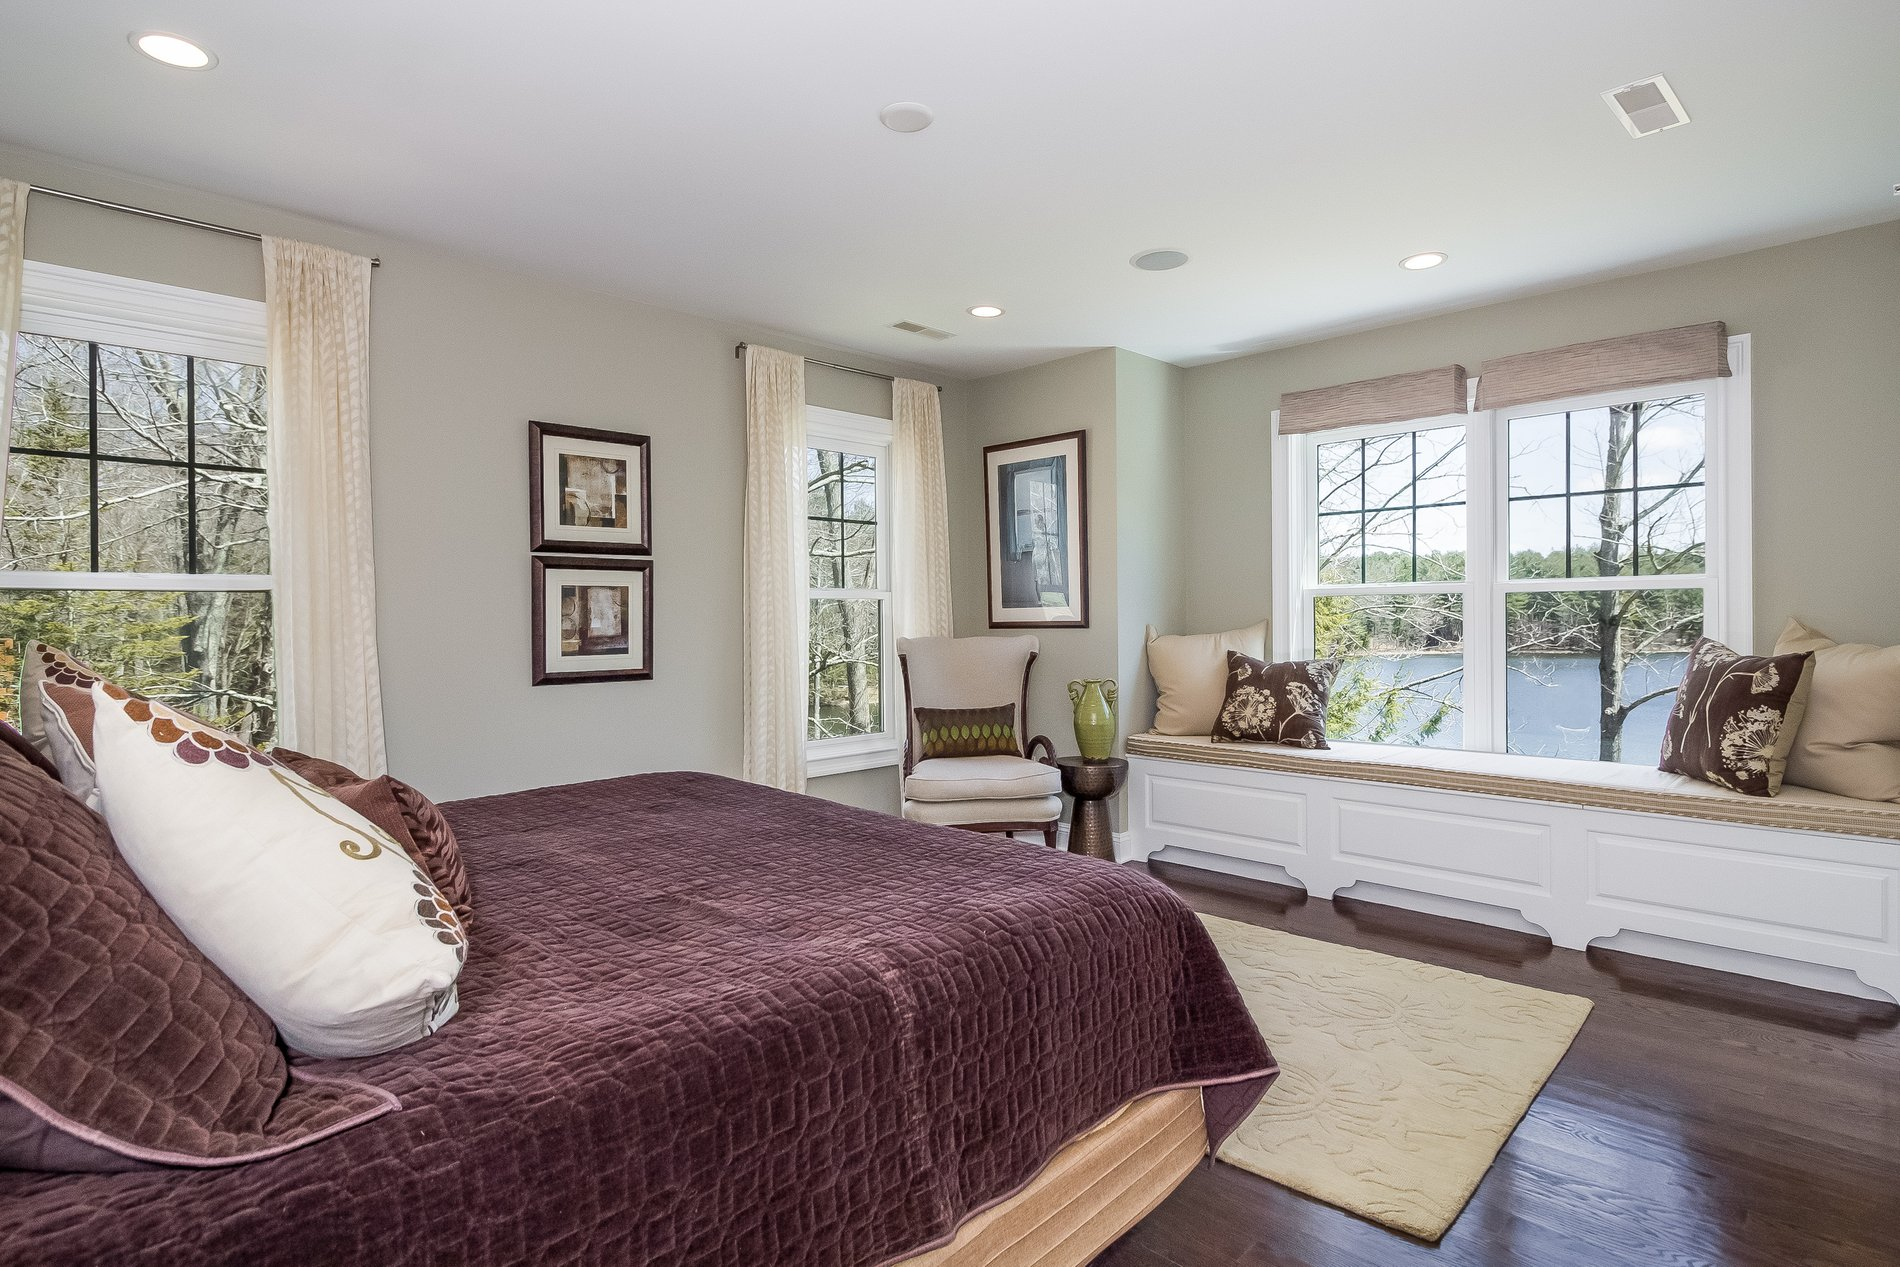 Master bedroom with a large window seat overlooking the river.